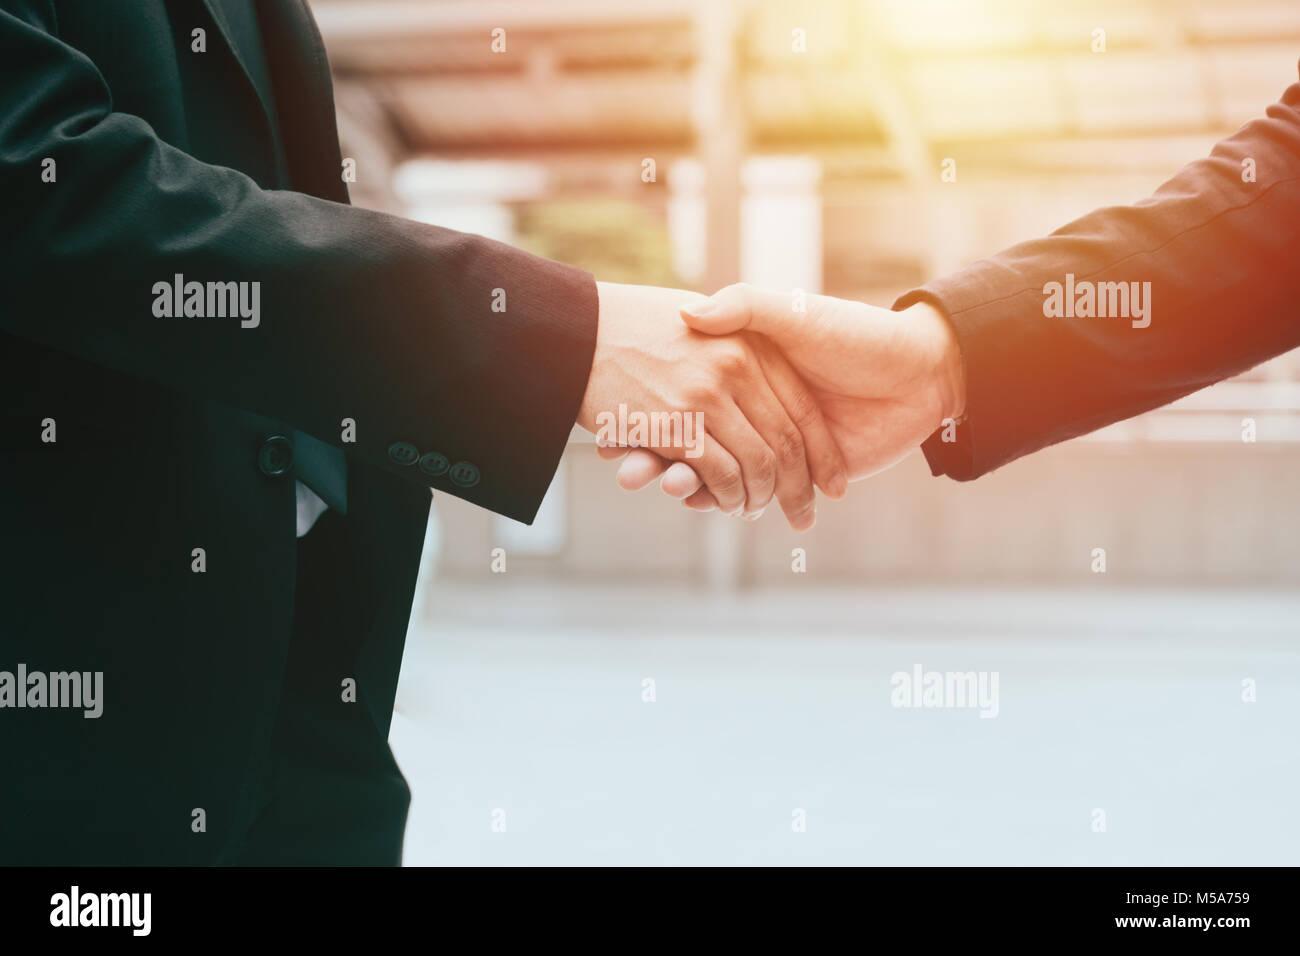 business man hand shaking closing a deal ,business team partnership concept - Stock Image